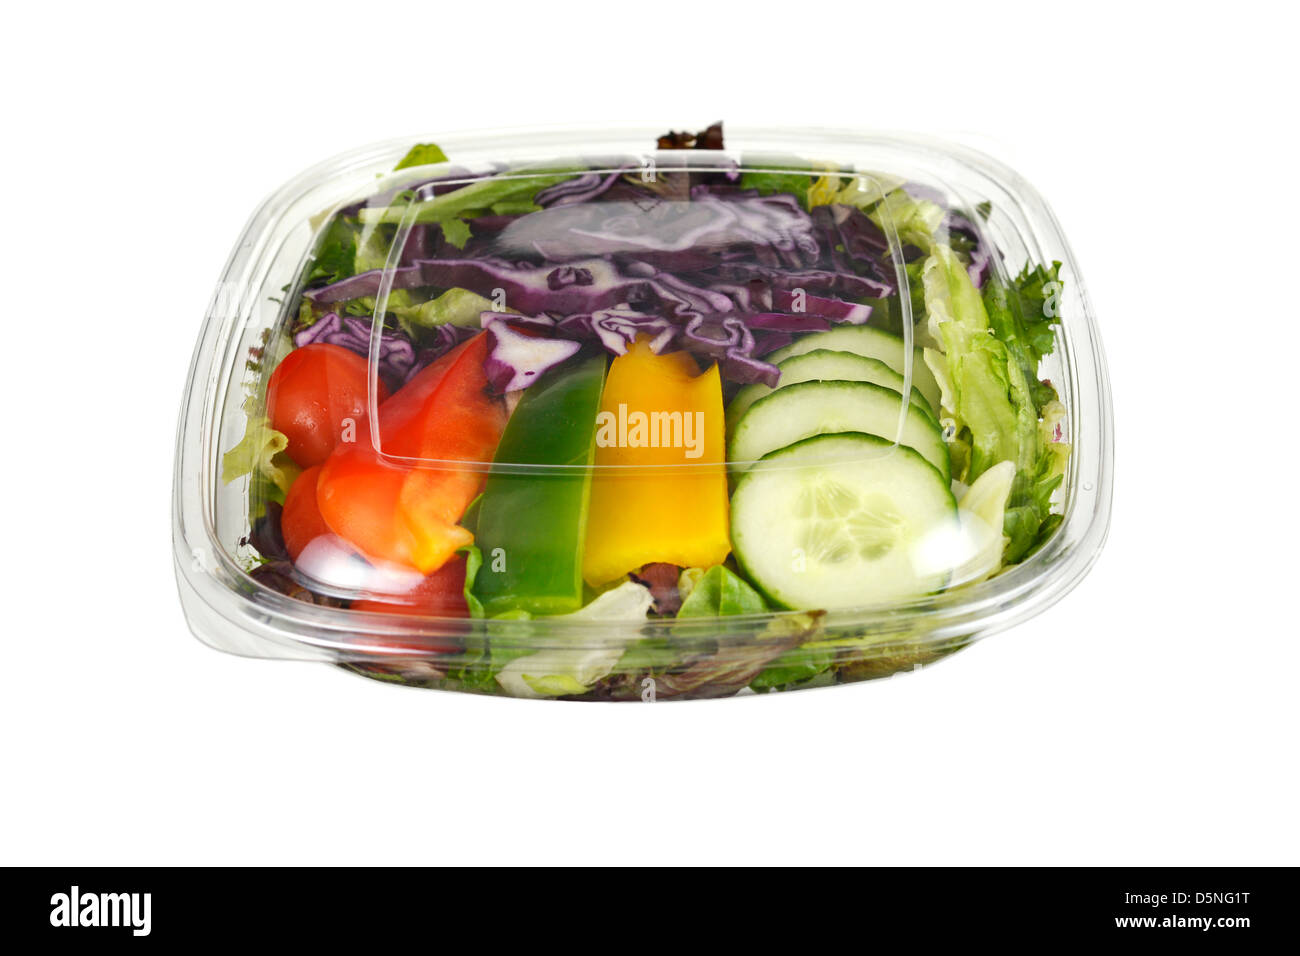 Packaged Salad, Packed Salad in Plastic Container - Stock Image